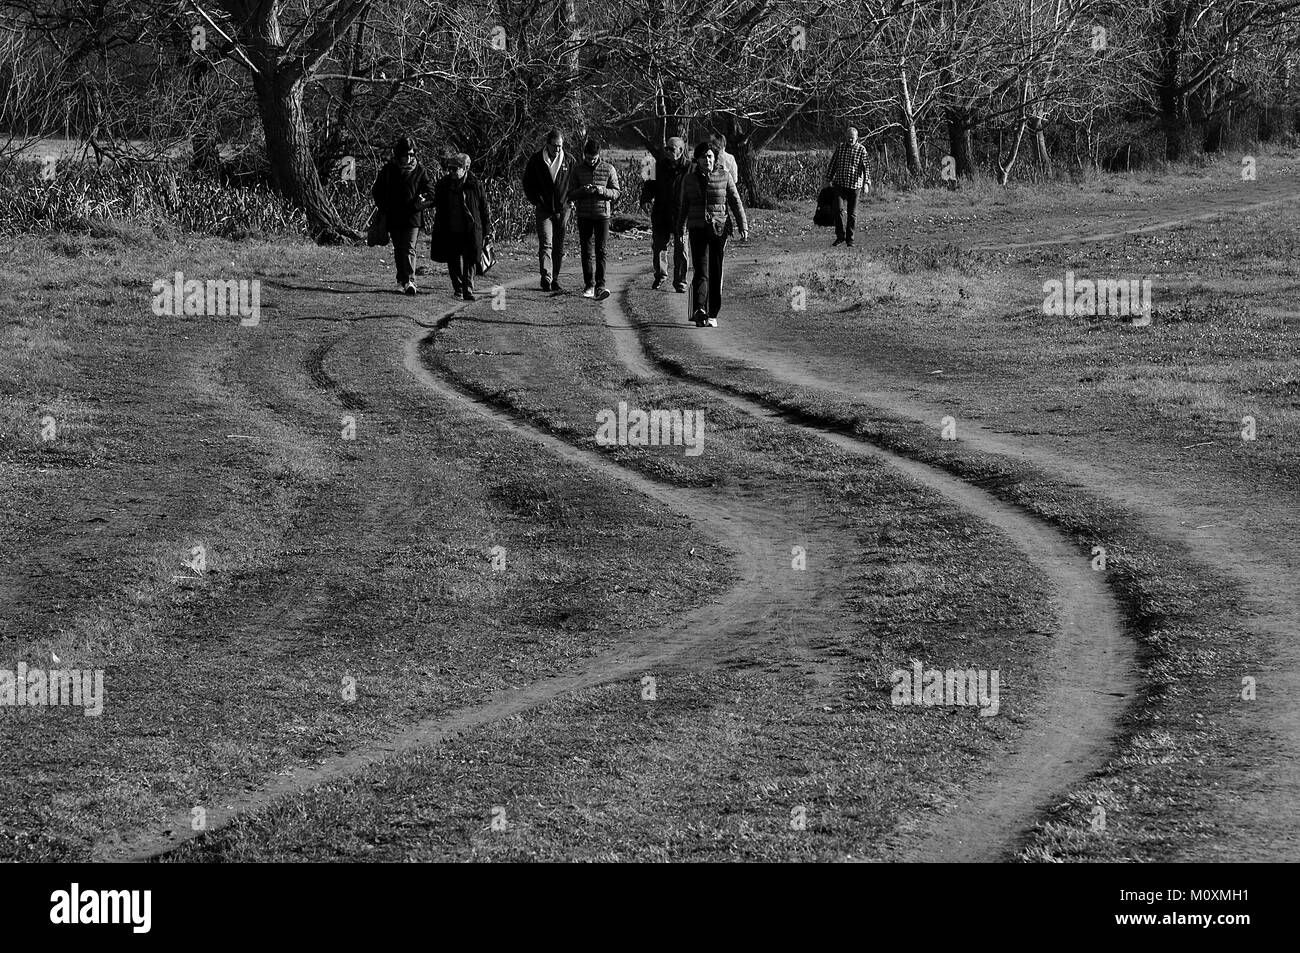 Dirt path with curved furrows with trees in the background and people walking - Stock Image